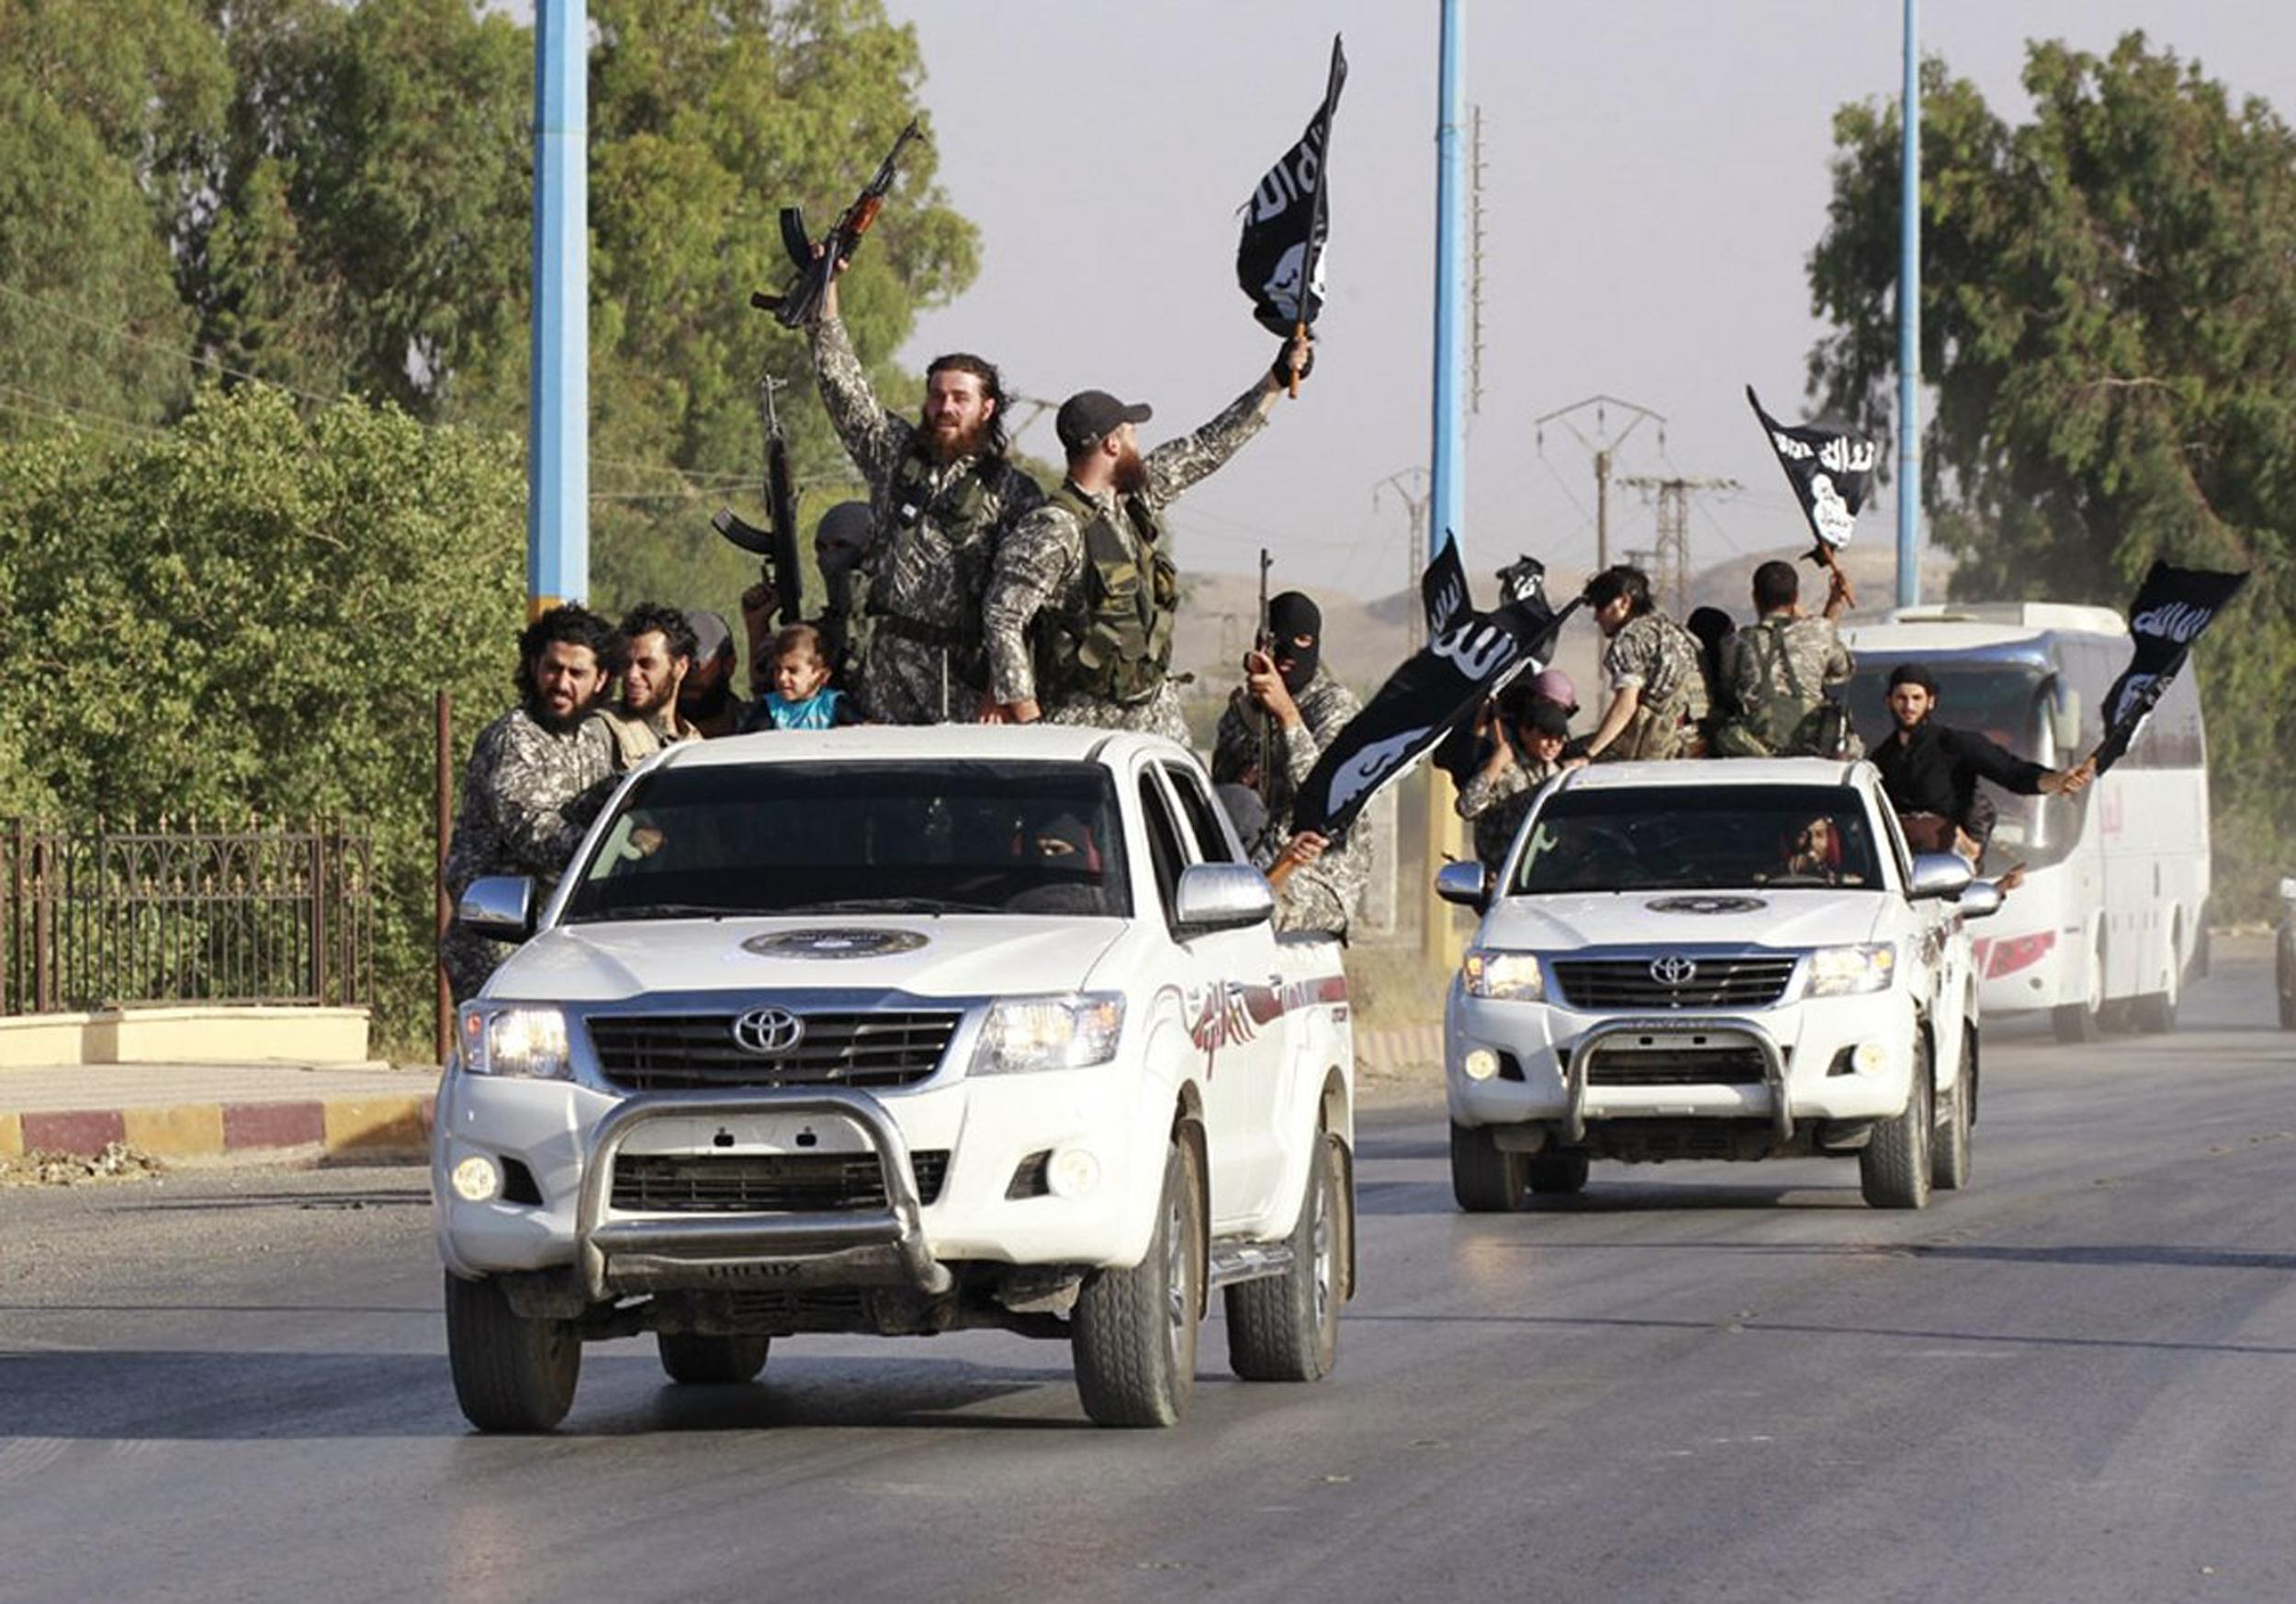 Image: Militant Islamist fighters wave flags as they take part in a military parade along the streets of Raqqa